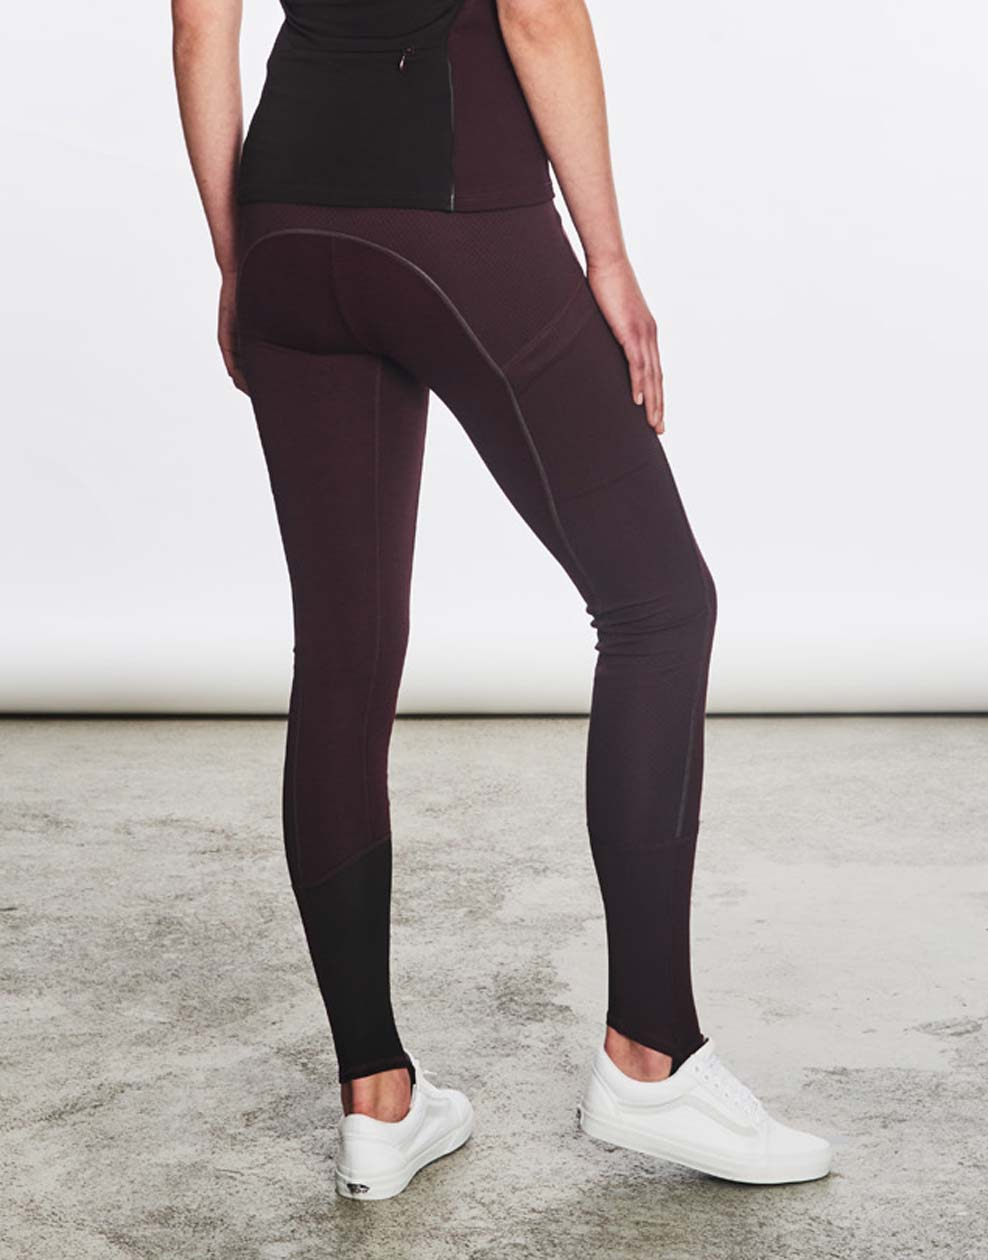 93beceaf470 Arys Strong and Sculpt Tights